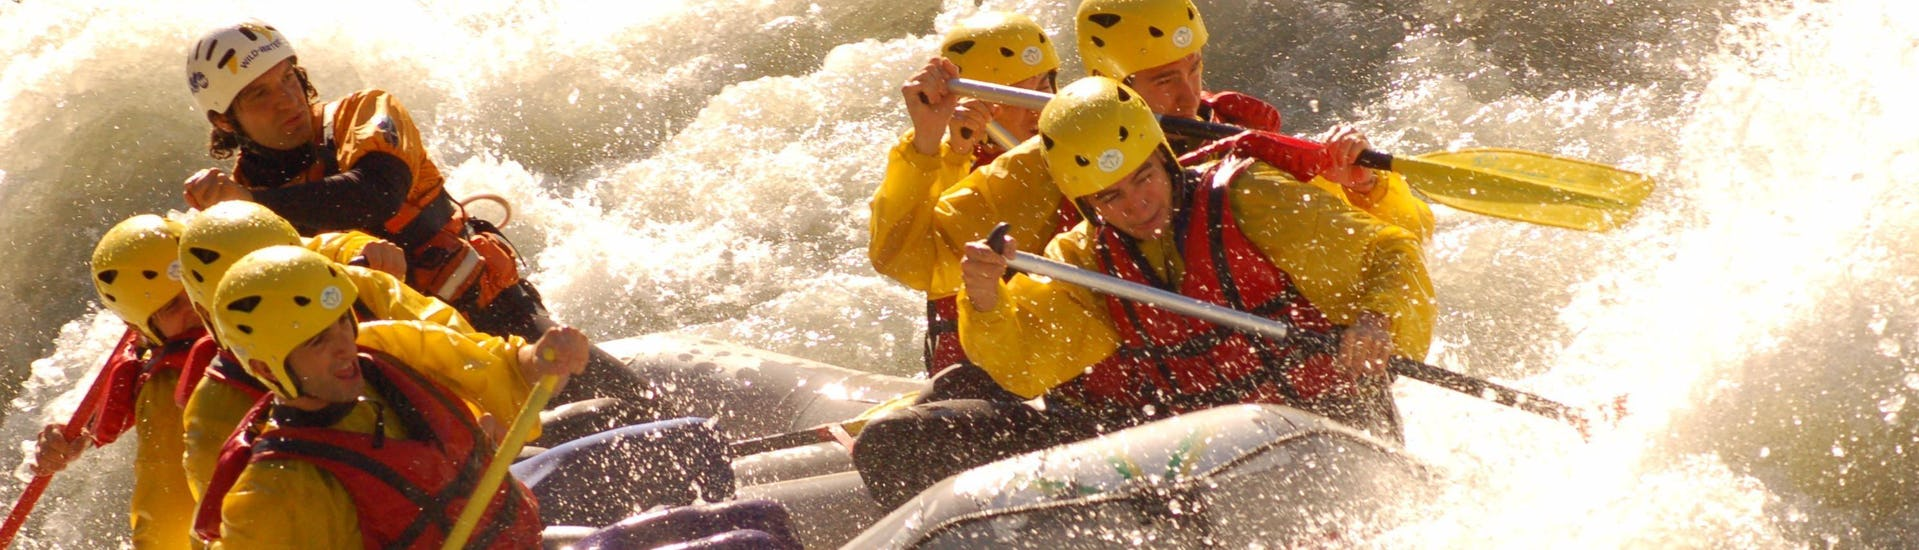 Some participants of the Rafting on the Dora Baltea - Advanced organized by Rafting Republic are mastering the river during the activity on the river Dora Baltea.